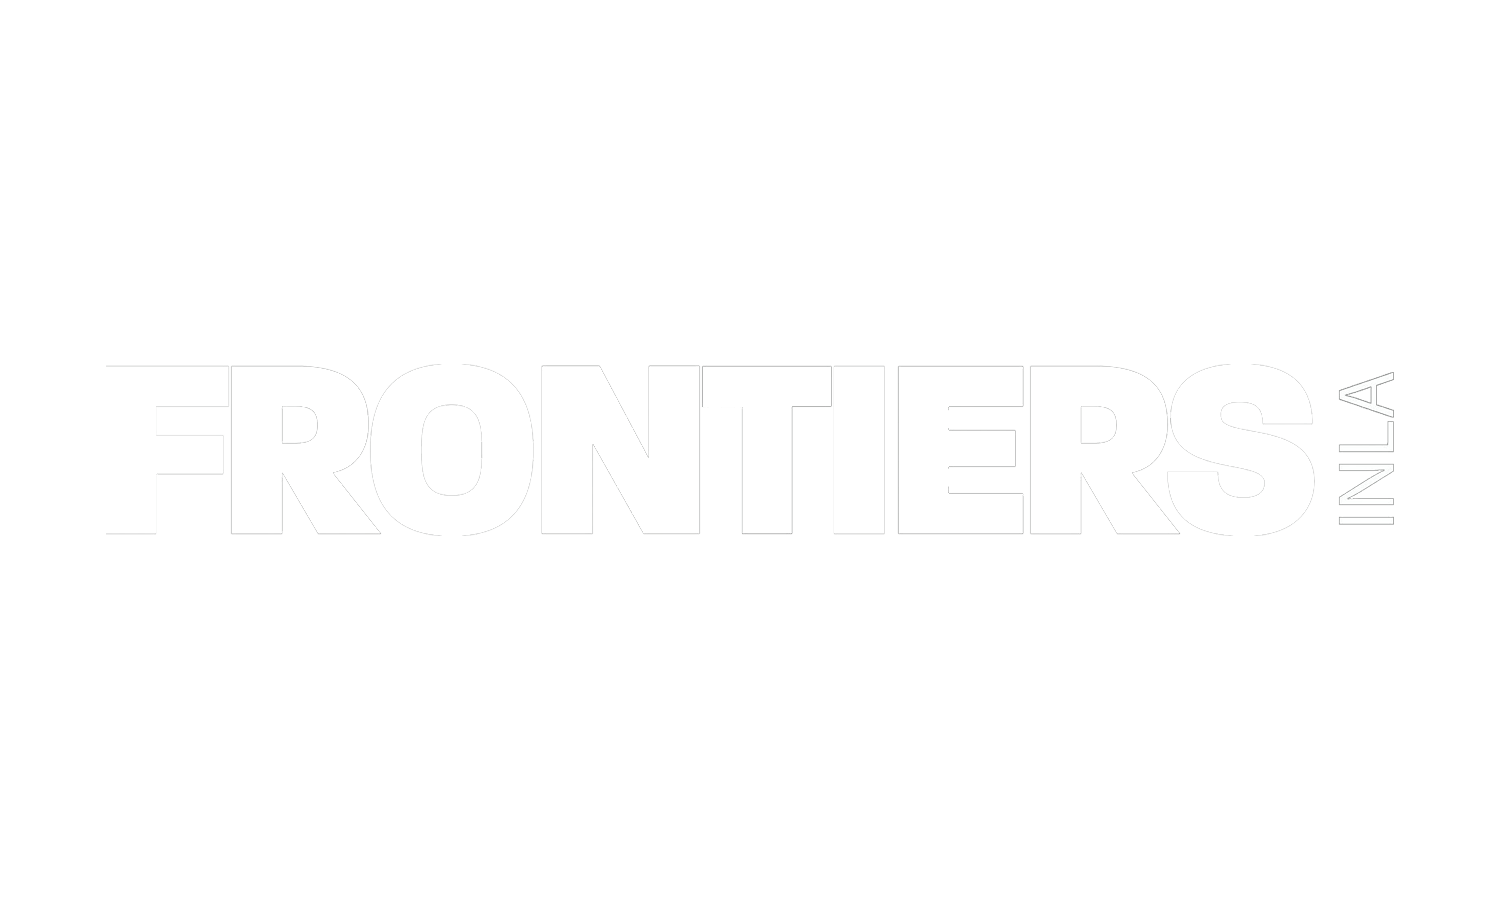 frontiers logo.png